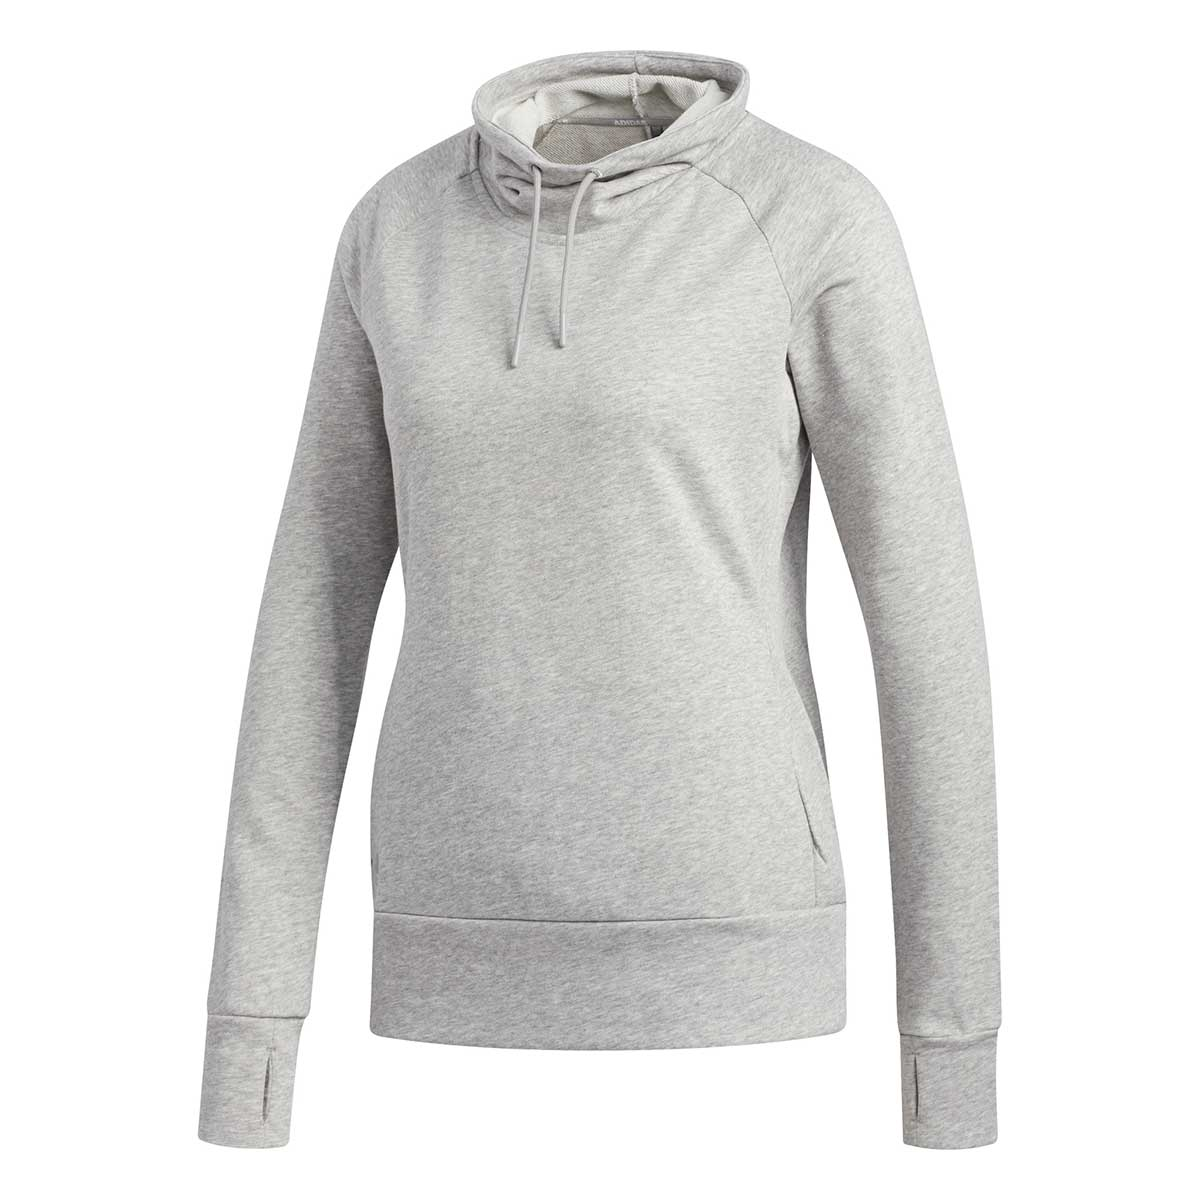 Adidas Women's Club Pullover Sweater